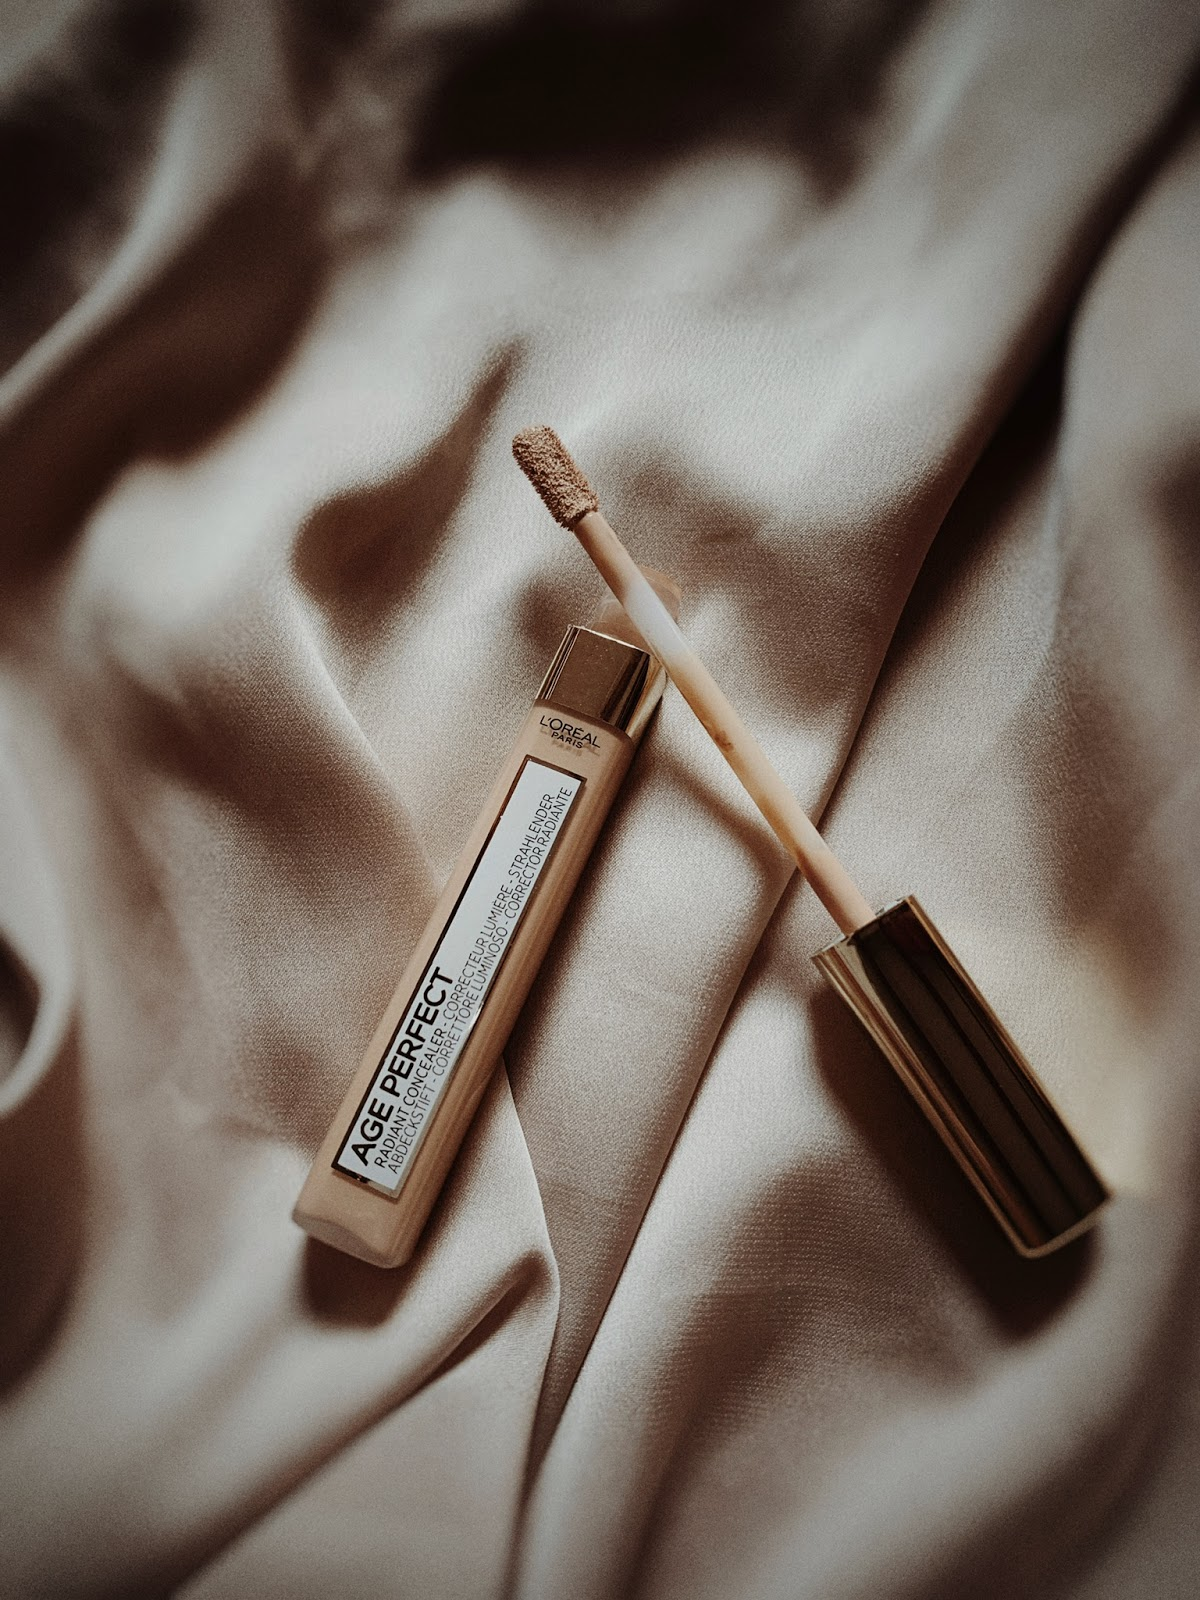 L'Oreal Age Perfect Concealer